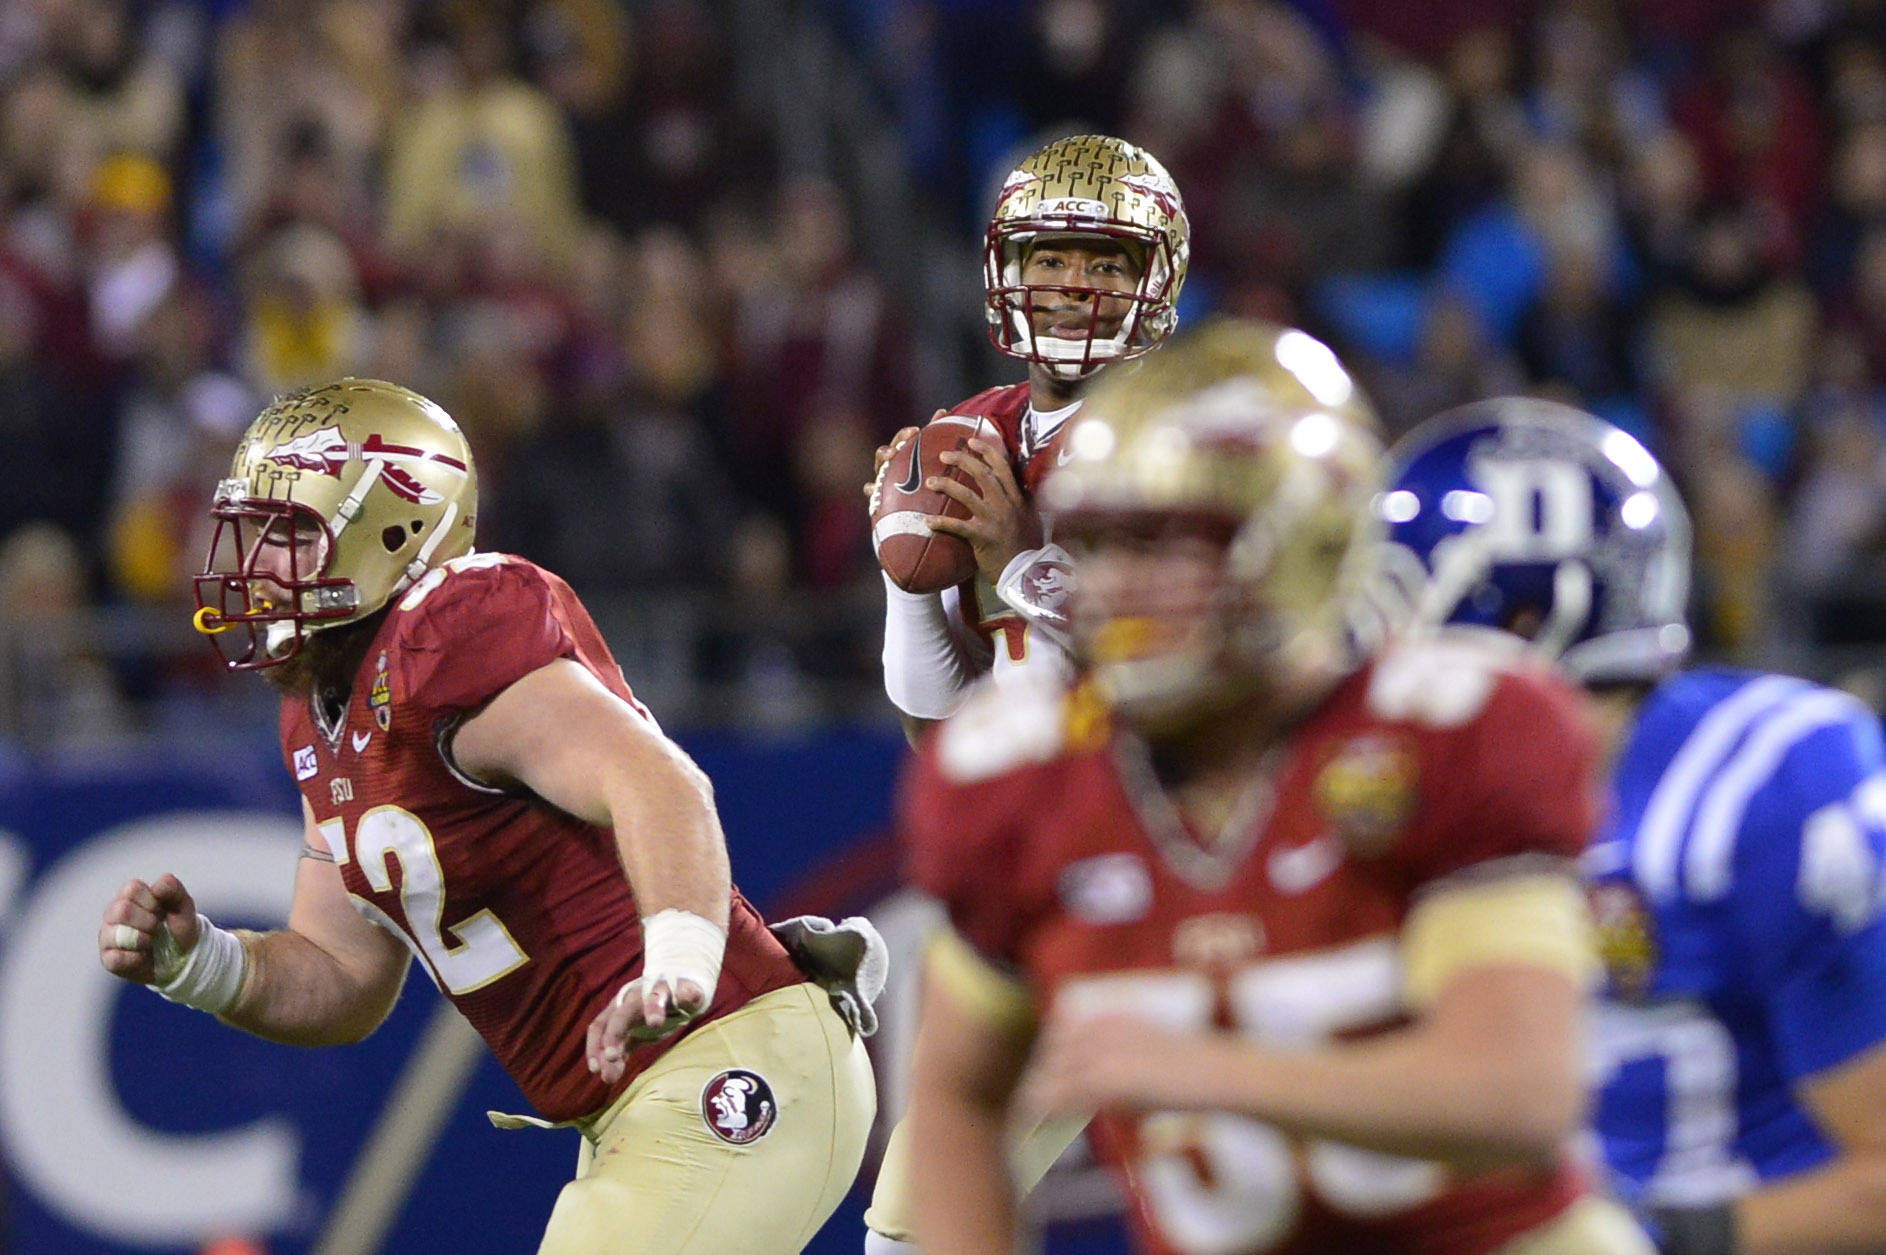 Dec 7, 2013; Charlotte, NC, USA; Florida State Seminoles quarterback Jameis Winston (5) looks to pass as offensive linesman Bryan Stork (52) blocks and tight end Nick O'Leary (35) runs his route as Duke Blue Devils linebacker David Helton (47) defends in the second quarter at Bank of America Stadium. Mandatory Credit: Bob Donnan-USA TODAY Sports